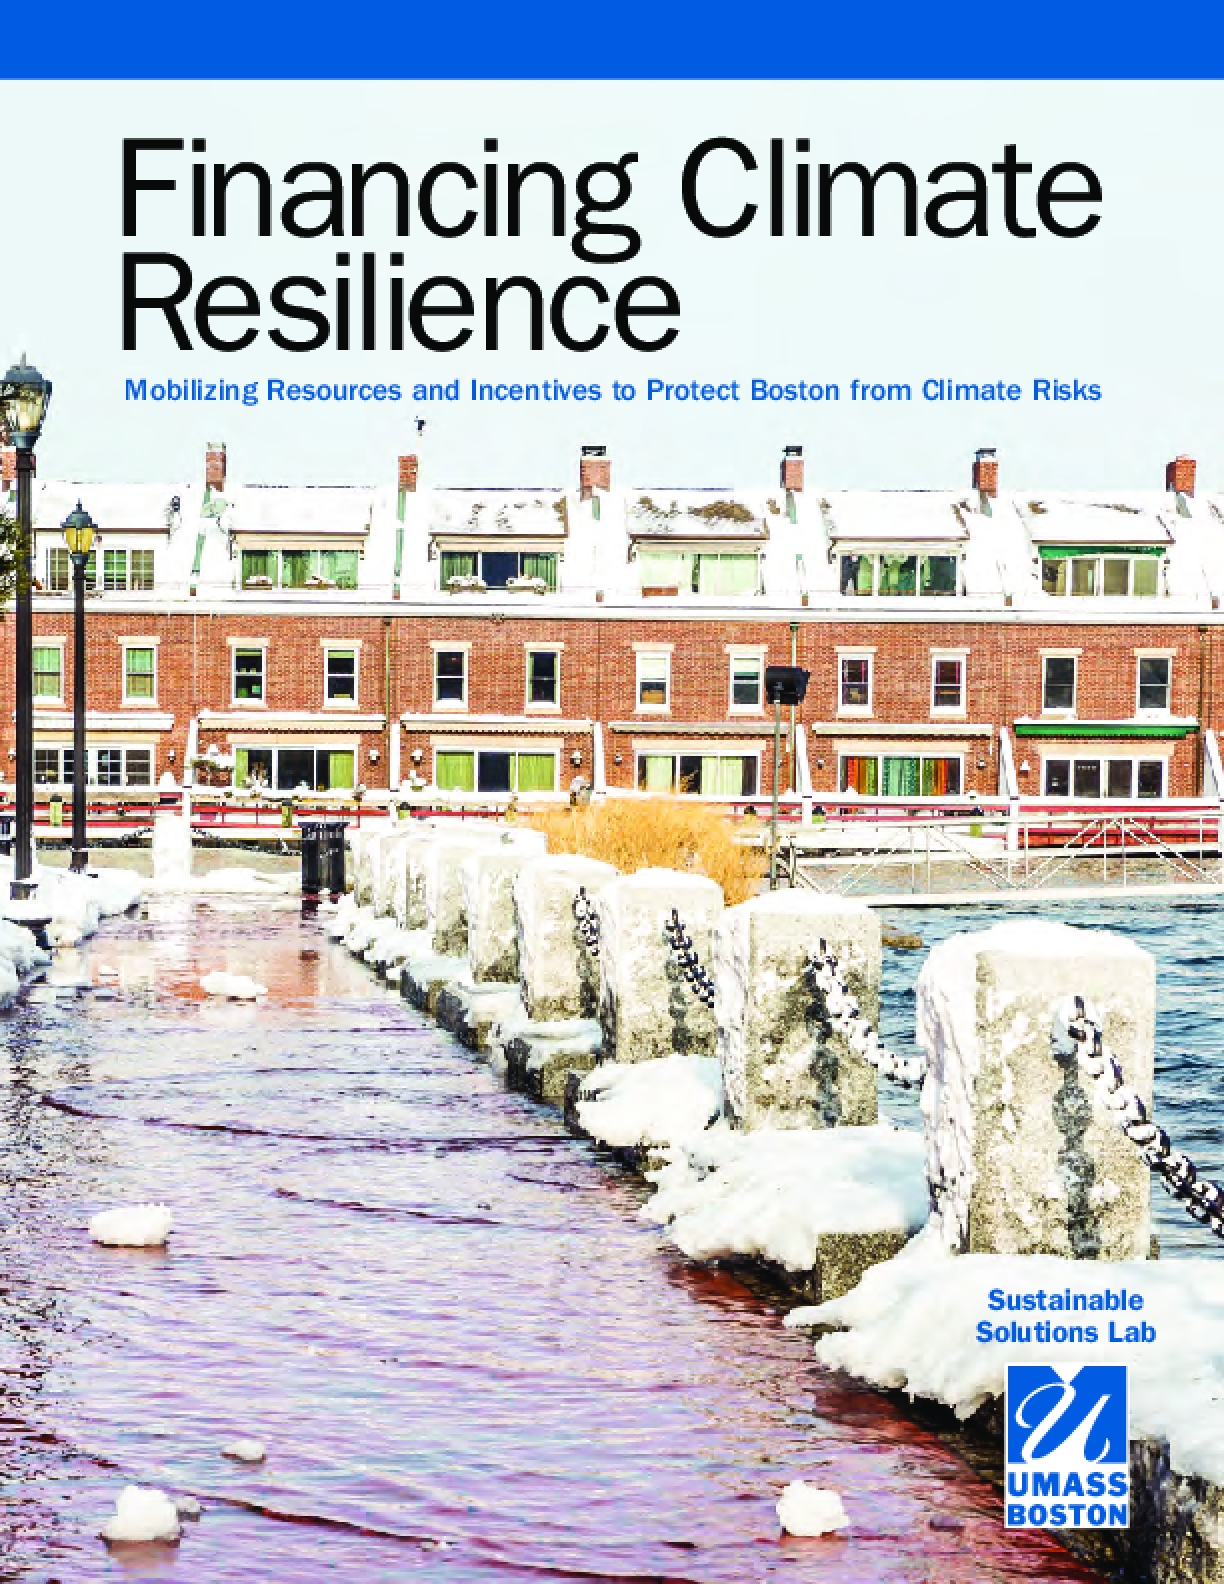 Financing Climate Resilience: Mobilizing Resources and Incentives to Protect Boston from Climate Risks